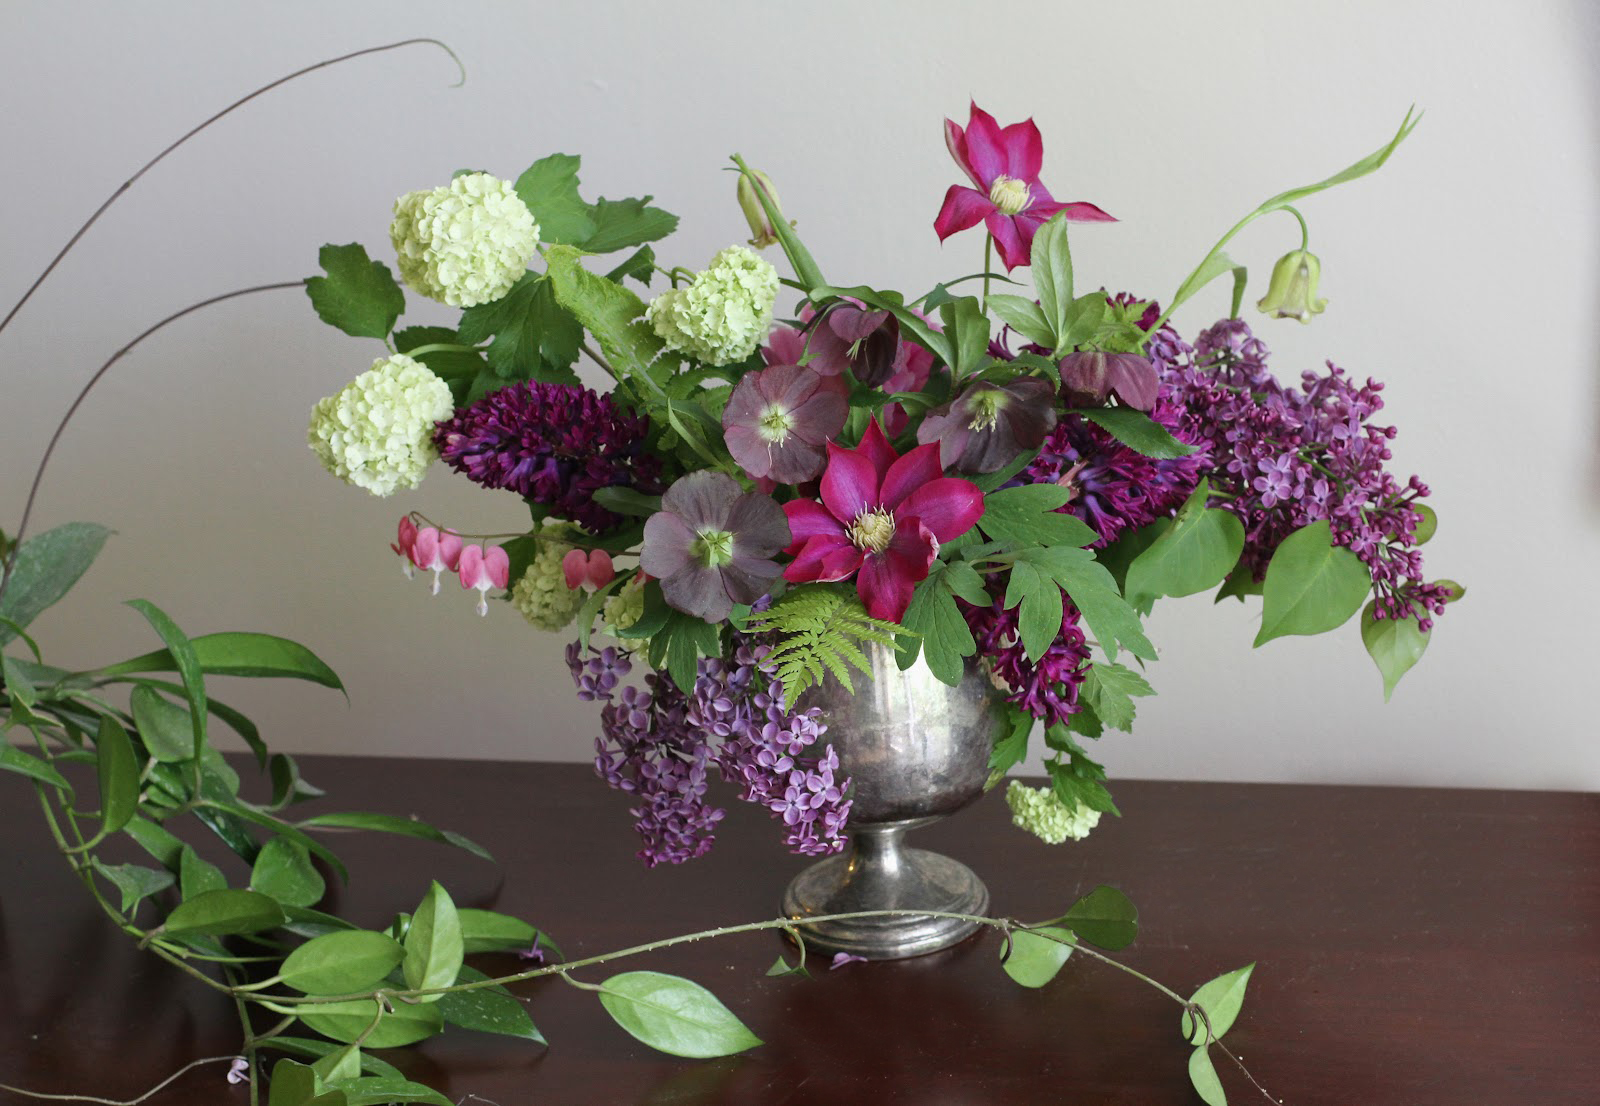 Flowers & Decor, Wedding Style, pink, purple, Centerpieces, Spring Weddings, Garden Weddings, Spring Wedding Flowers & Decor, Summer Wedding Flowers & Decor